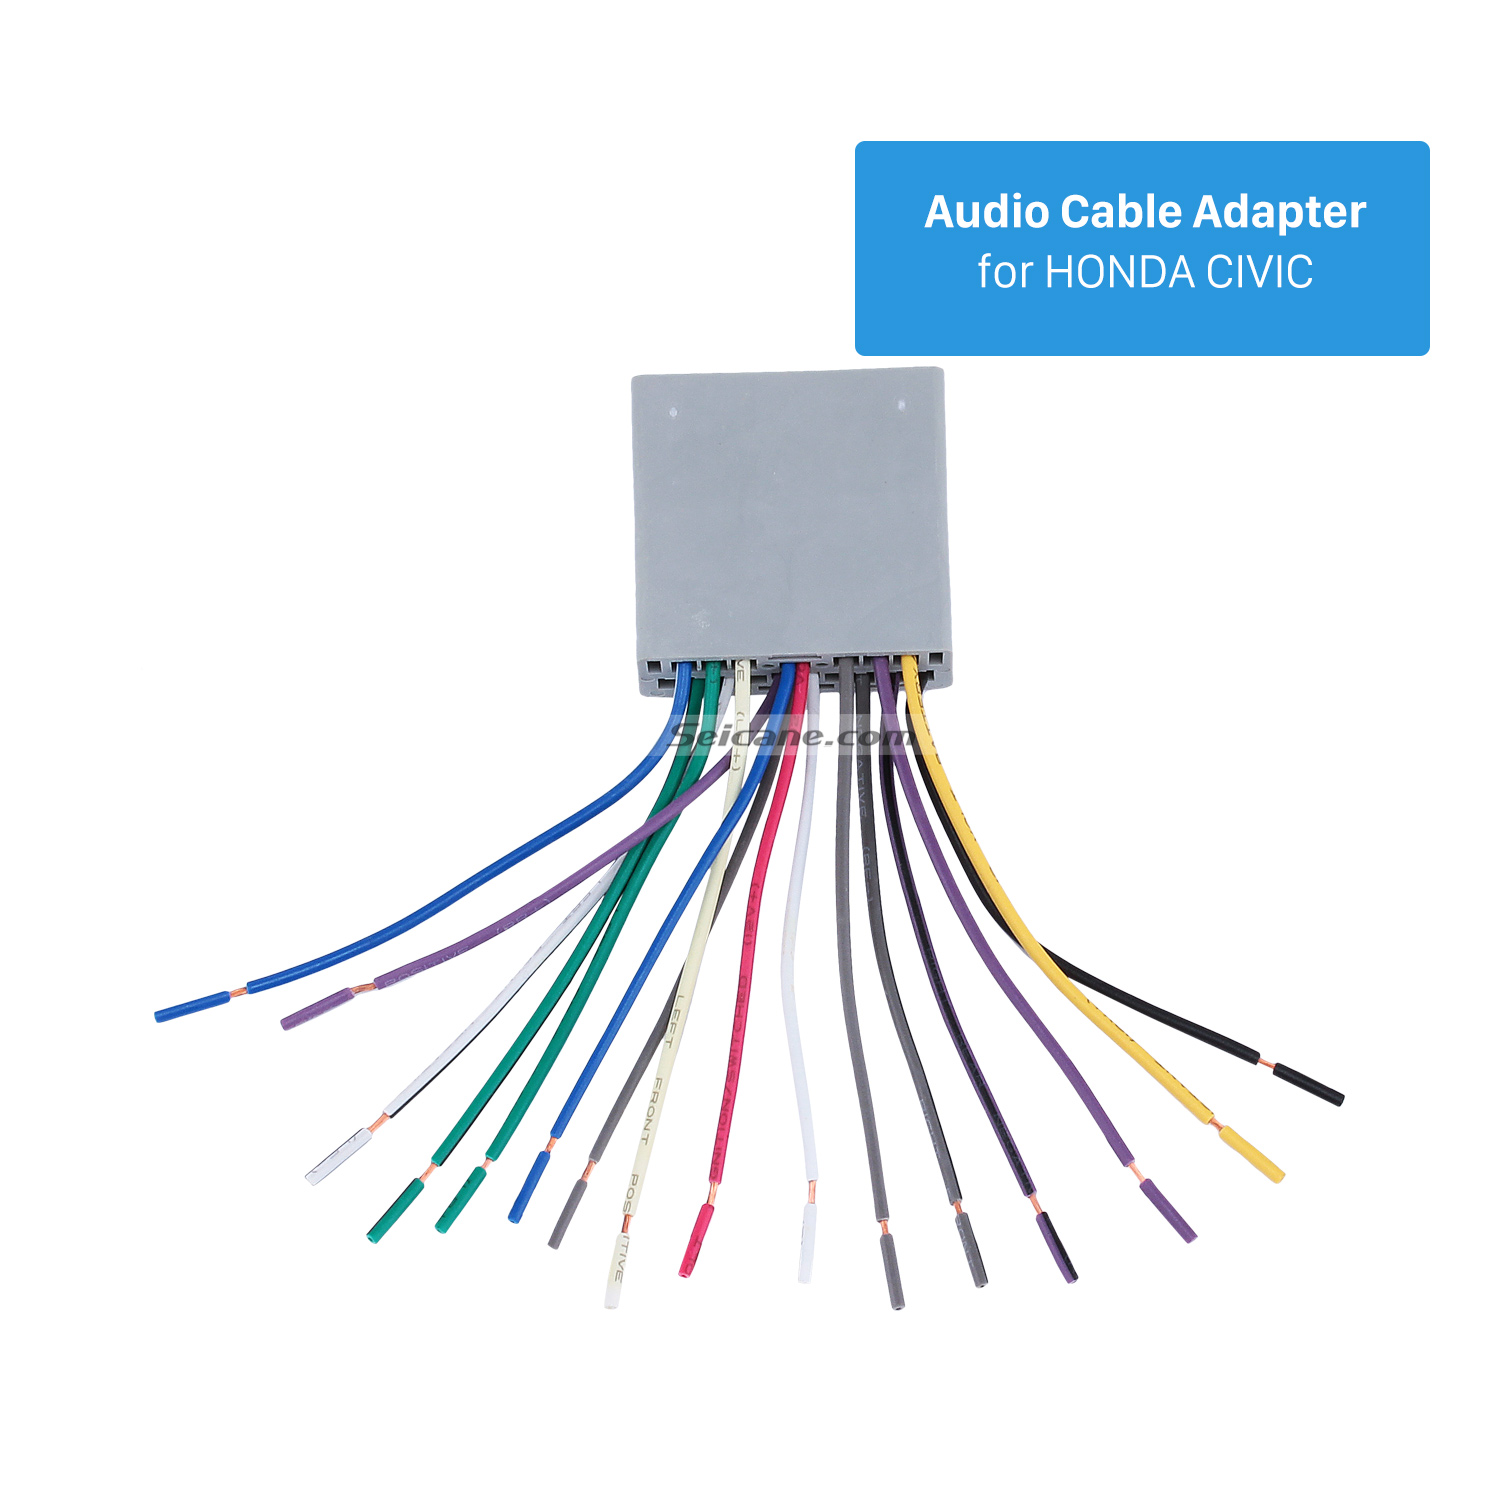 Seicane Top Wiring Harness Adapter Audio Cable and Radio Antenna Cable for  HONDA CIVIC-in Speaker Line from Automobiles & Motorcycles on  Aliexpress.com ...